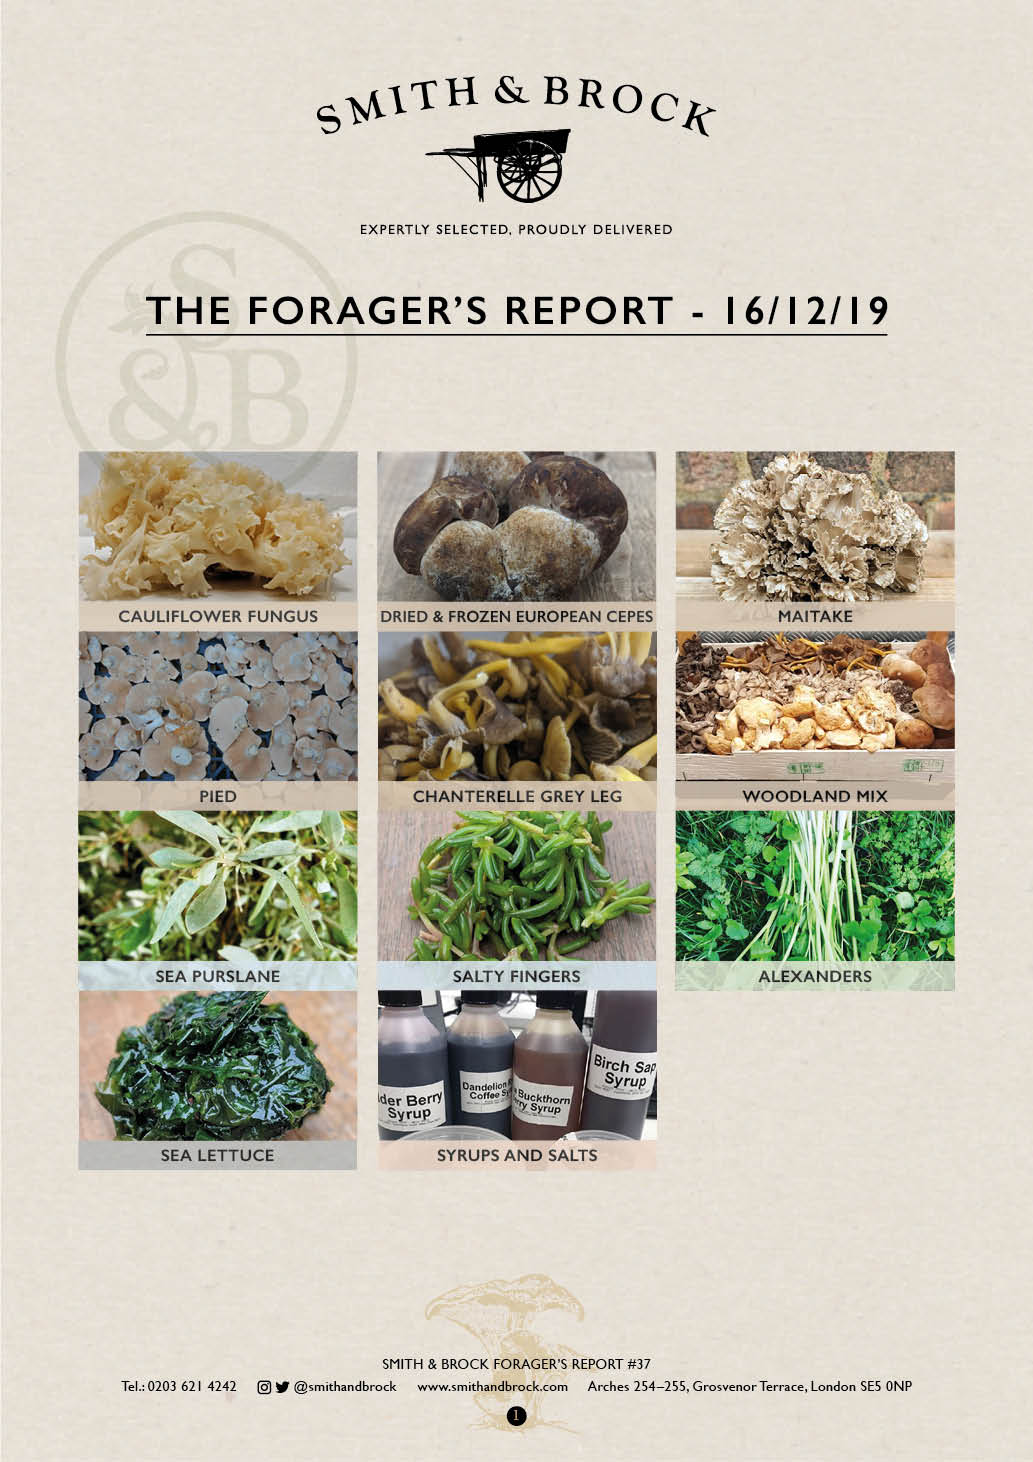 Smith&Brock Foraged Products Report 16 Dec 2019 37